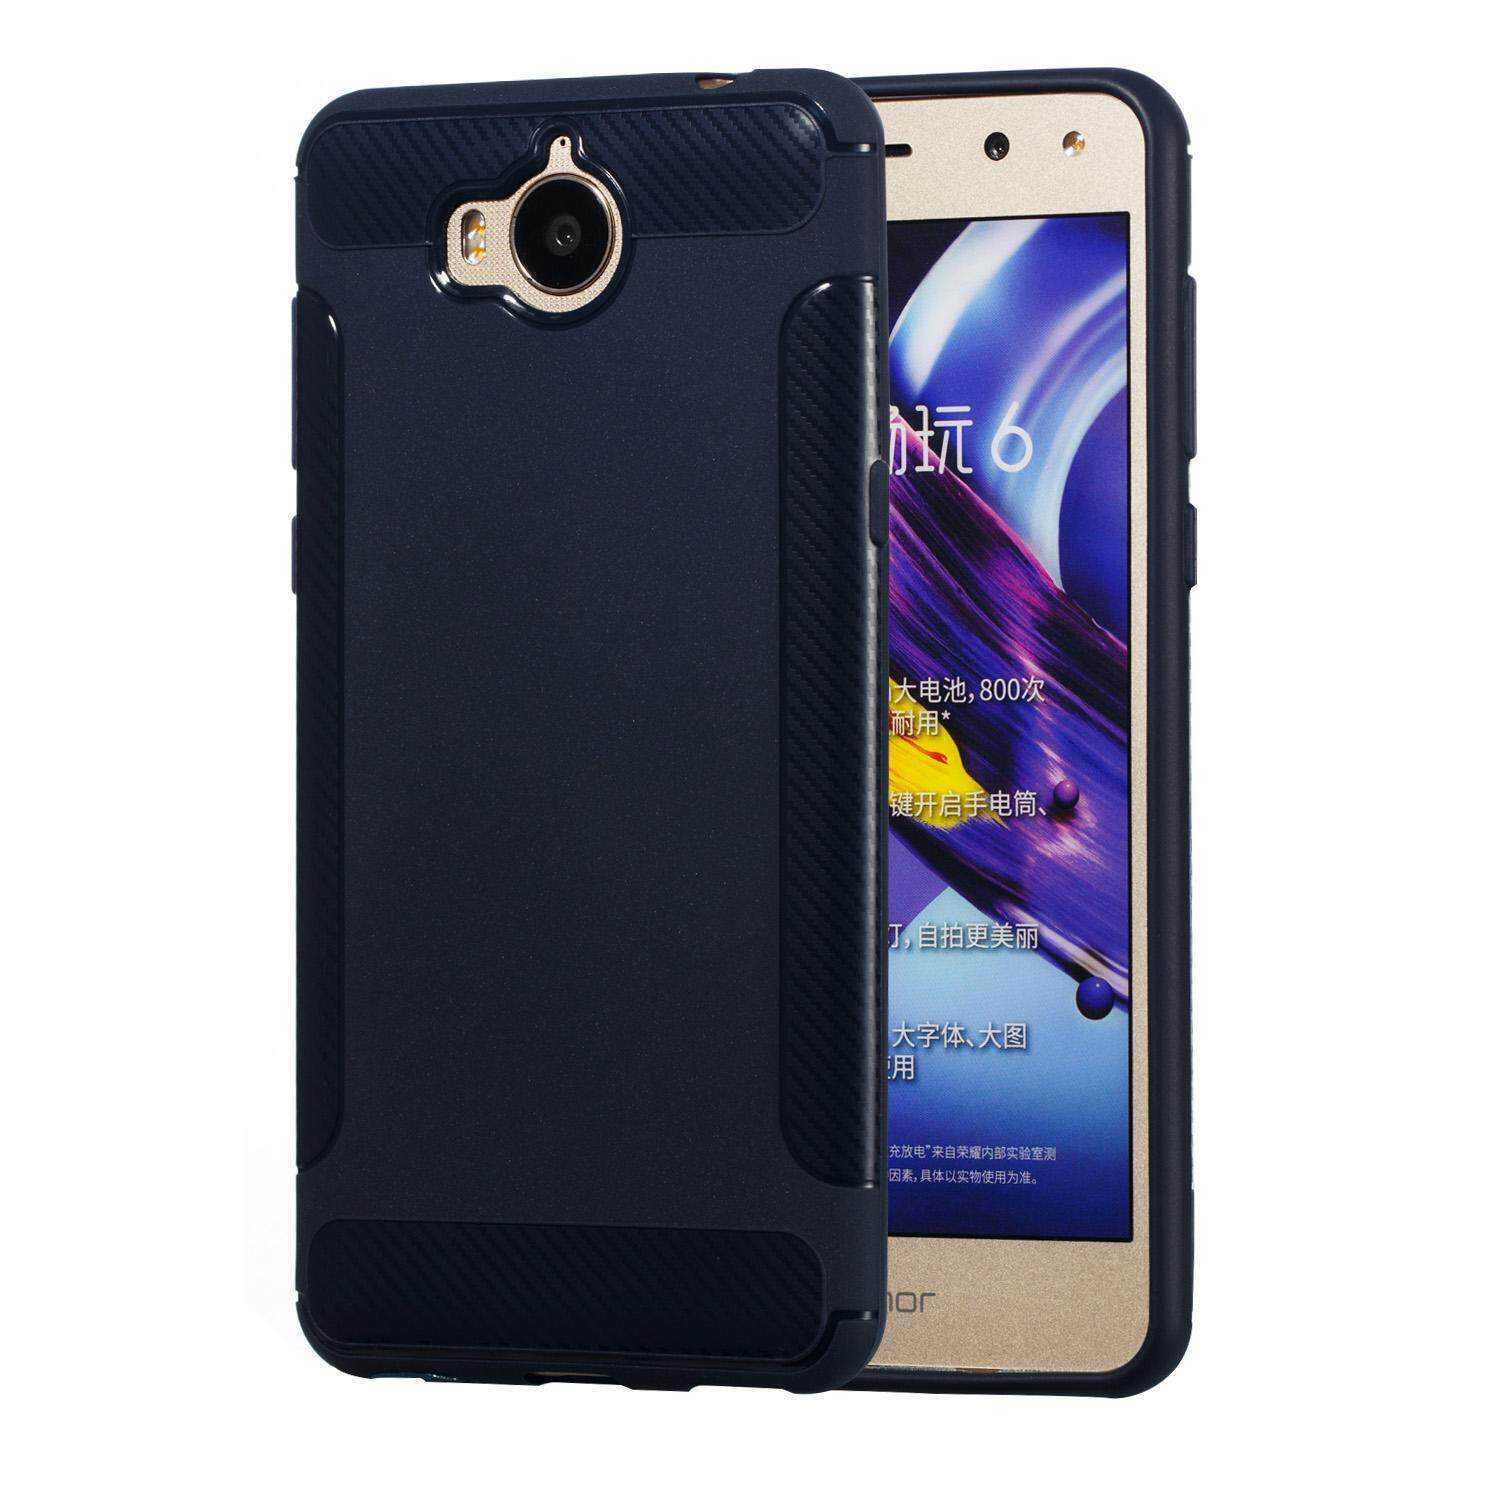 ... Full Body Case For OPPO R9s Plus F3 Plus Soft TPU Matte Finish . Source · Lucky-G For HUAWEI Y5 2017 Ultra Slim Matte Back Cover Non-slip Shockproof